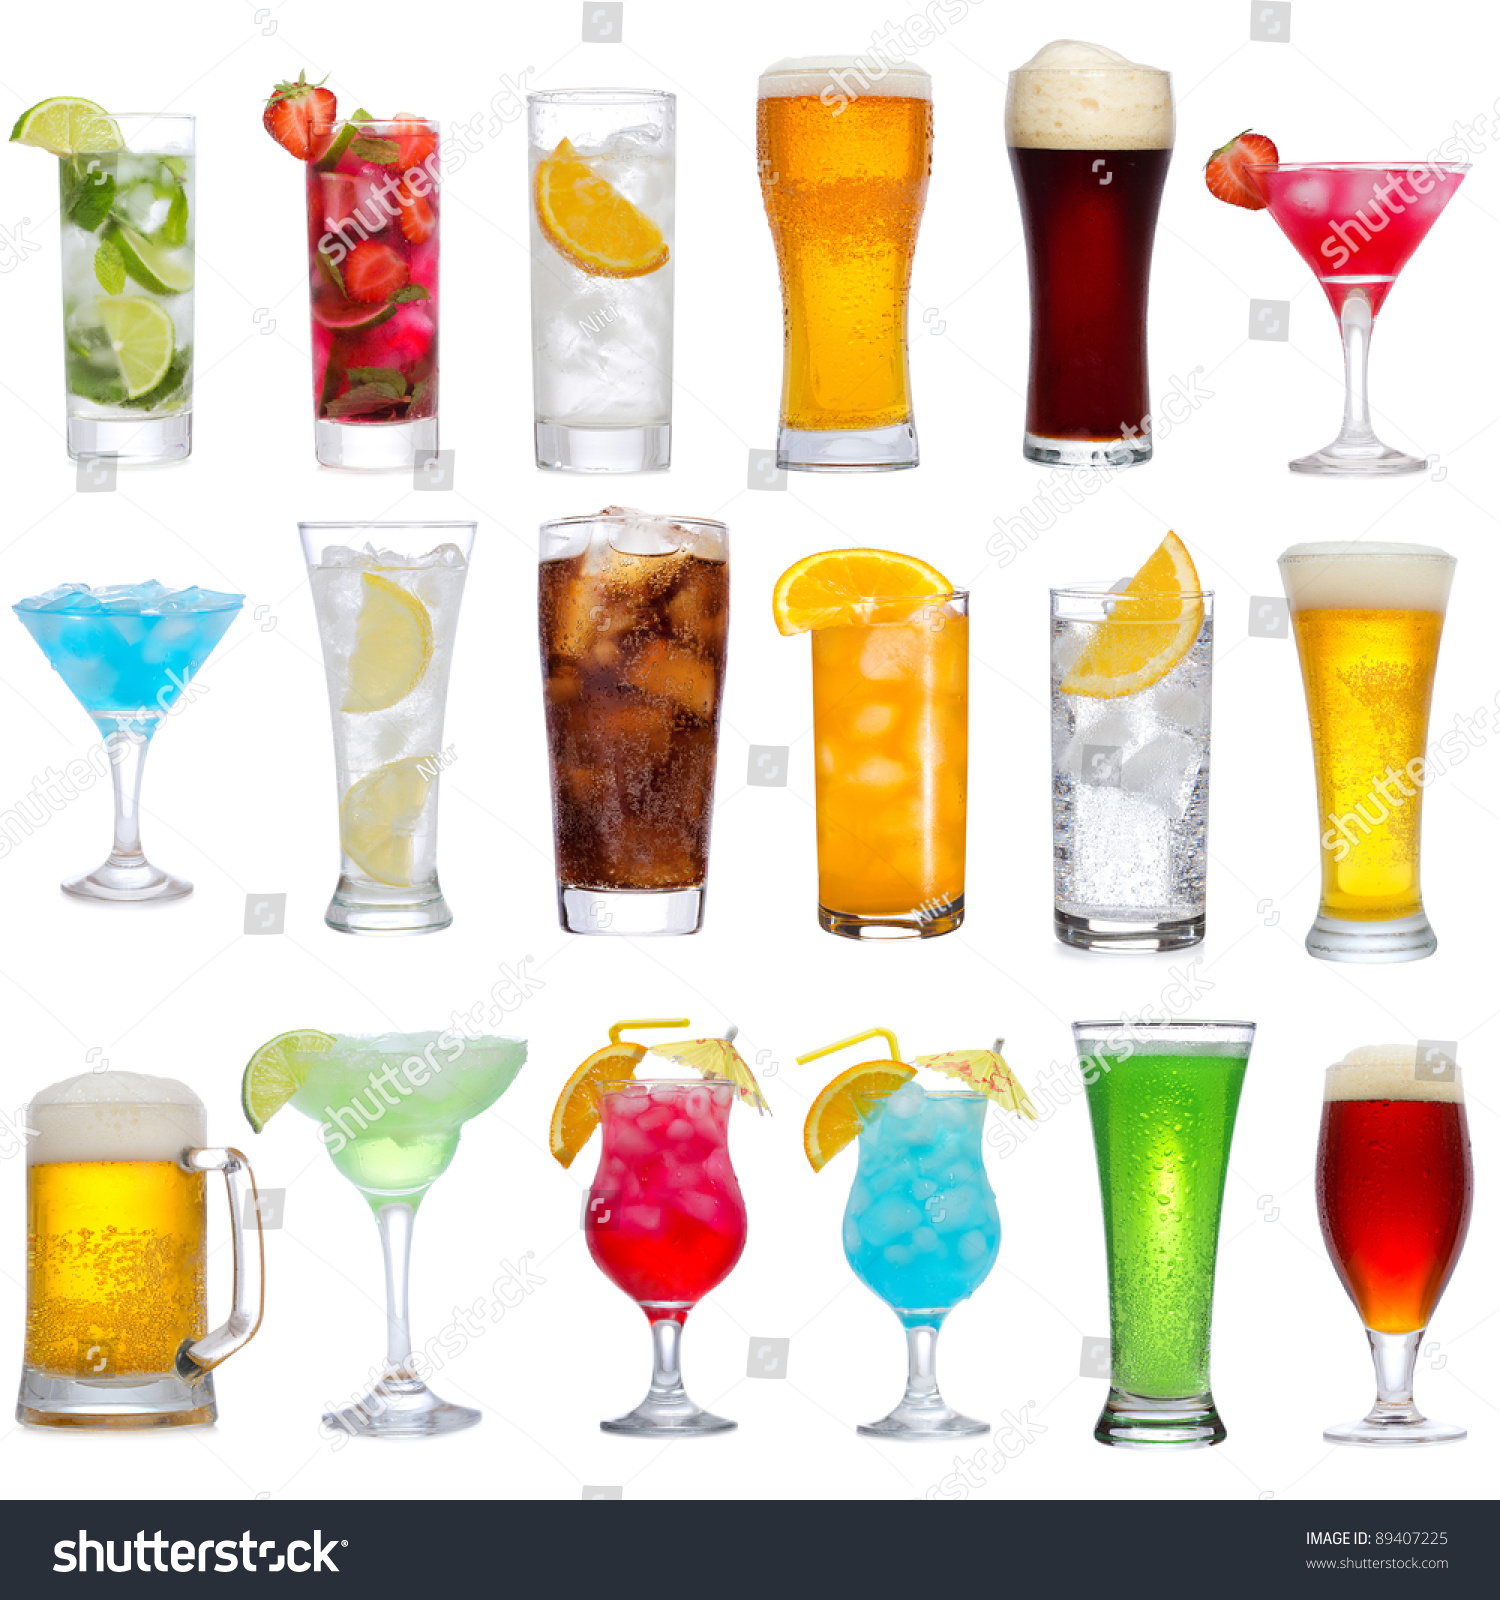 We All Drink Different Drinks At The Same Bar